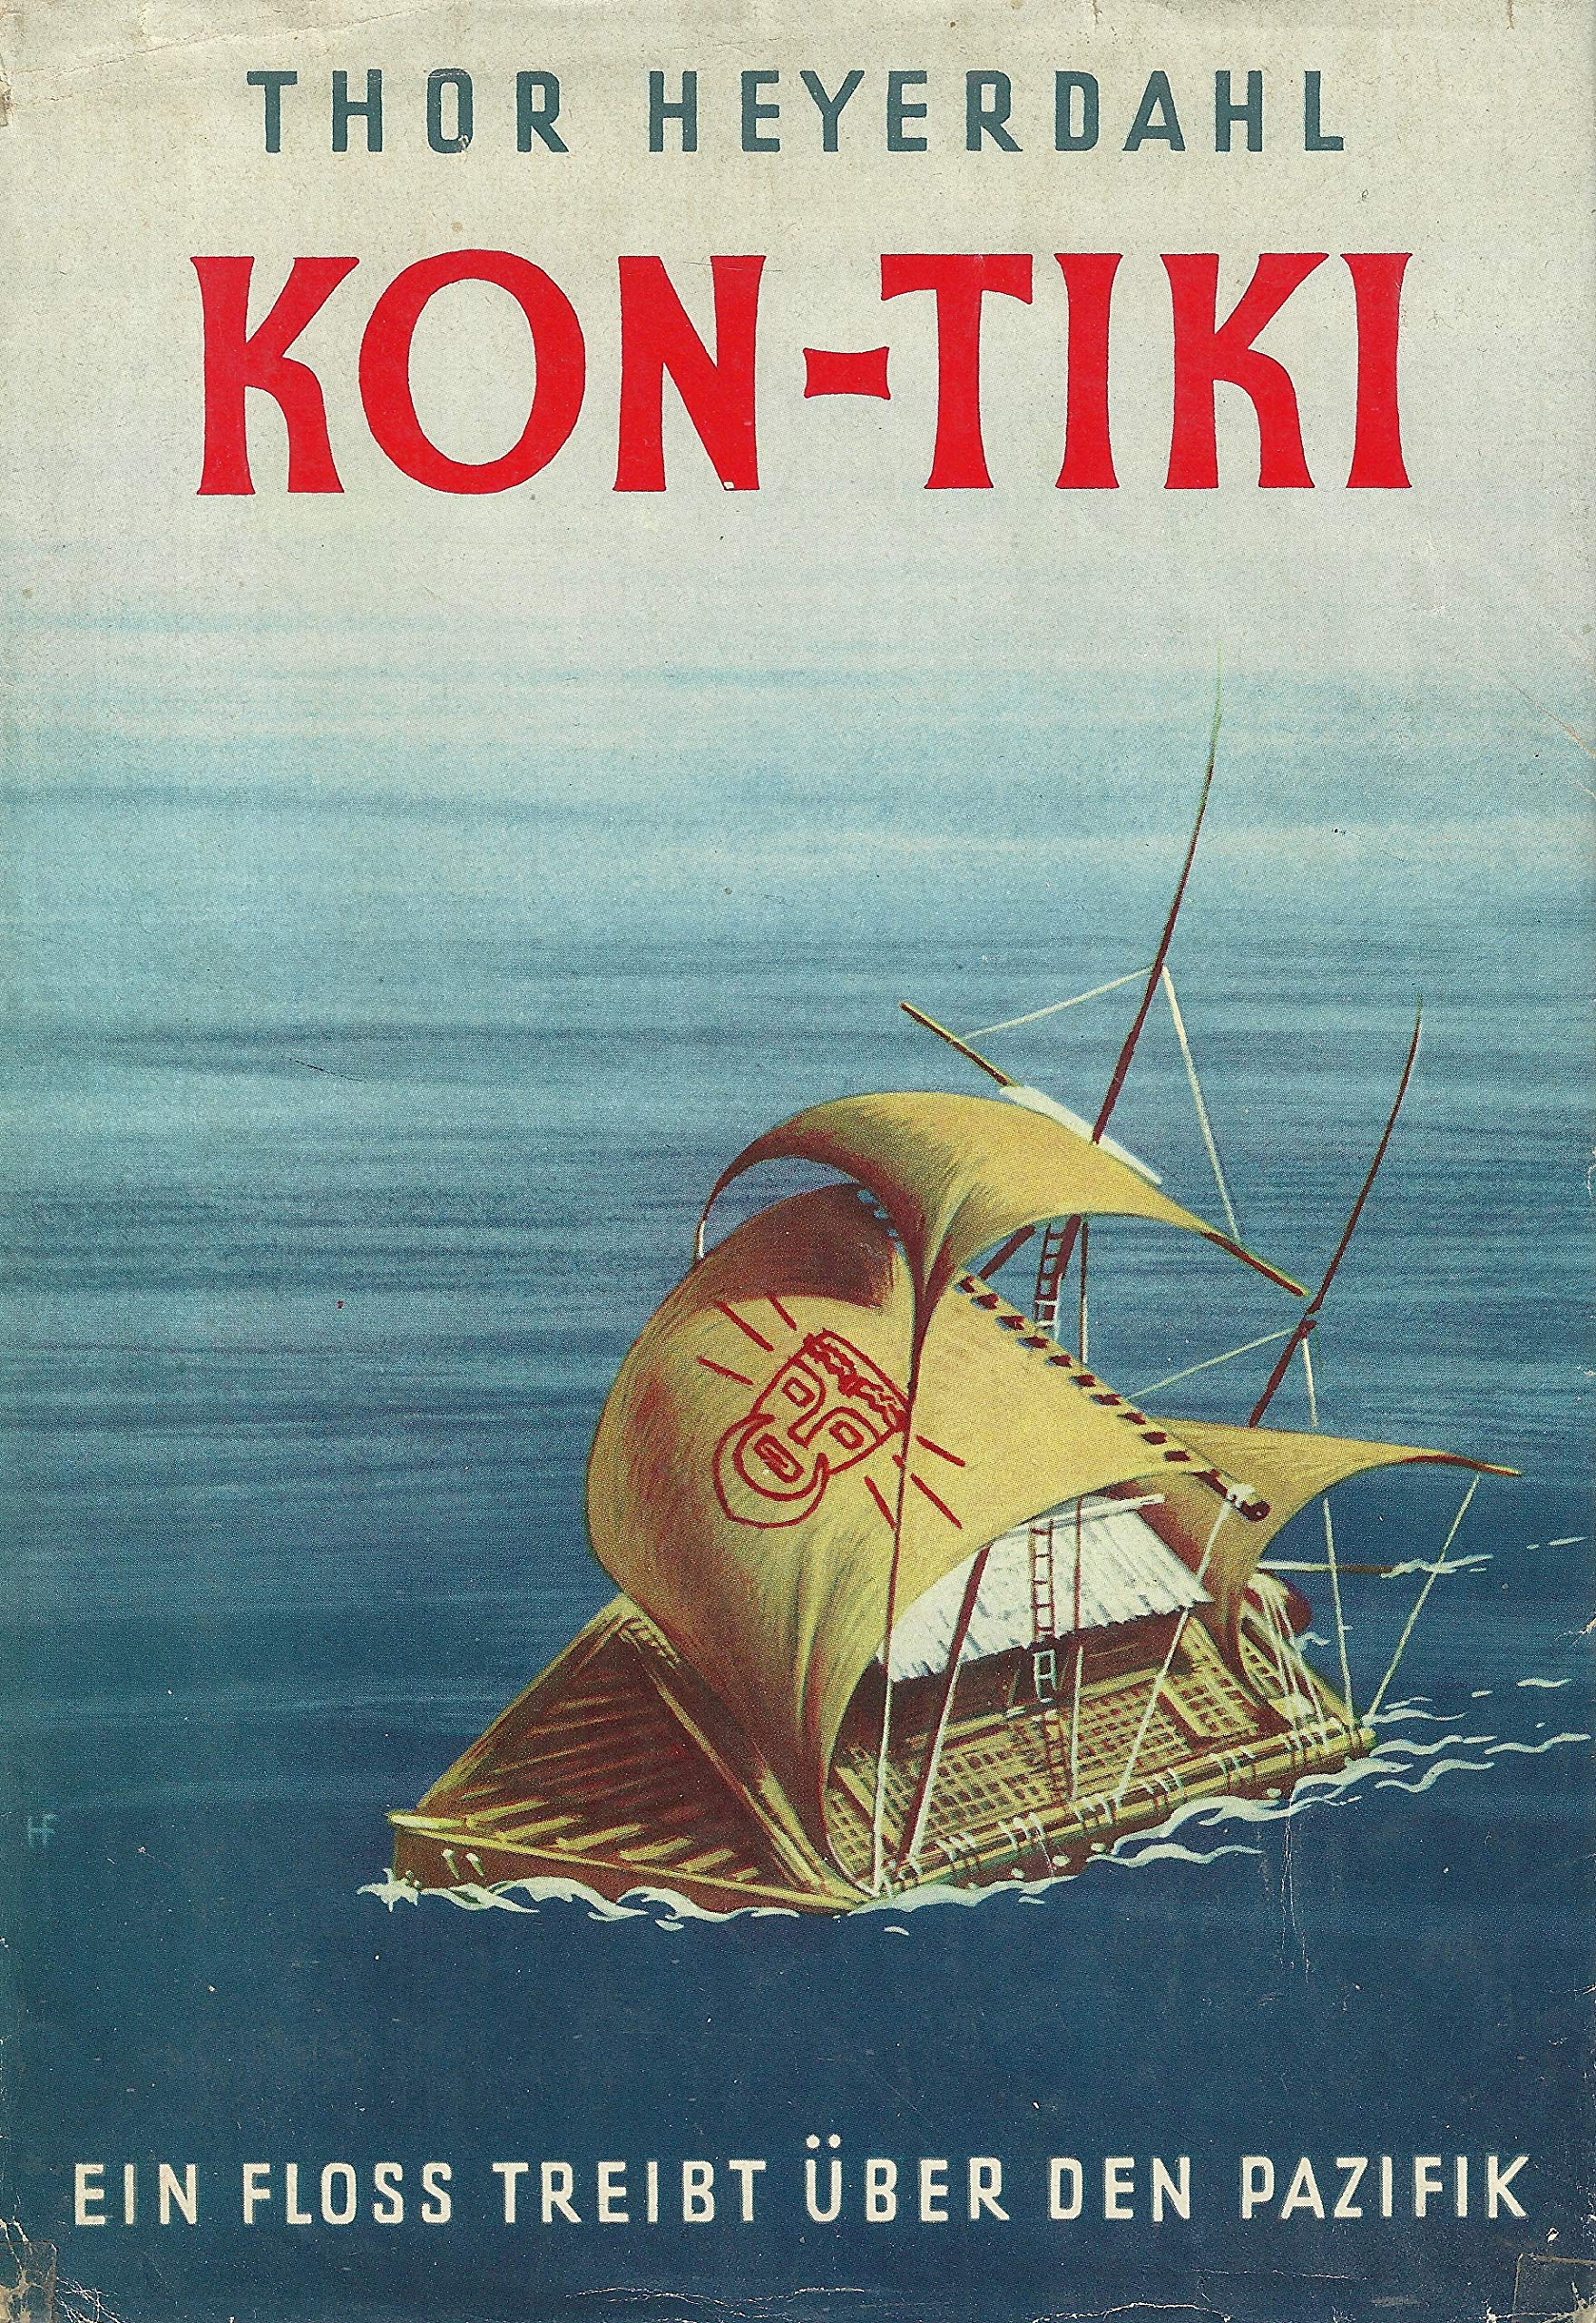 Kon-Tiki Ekspedisjonen By Thor Heyerdahl - one of the top 10 translated books in the world